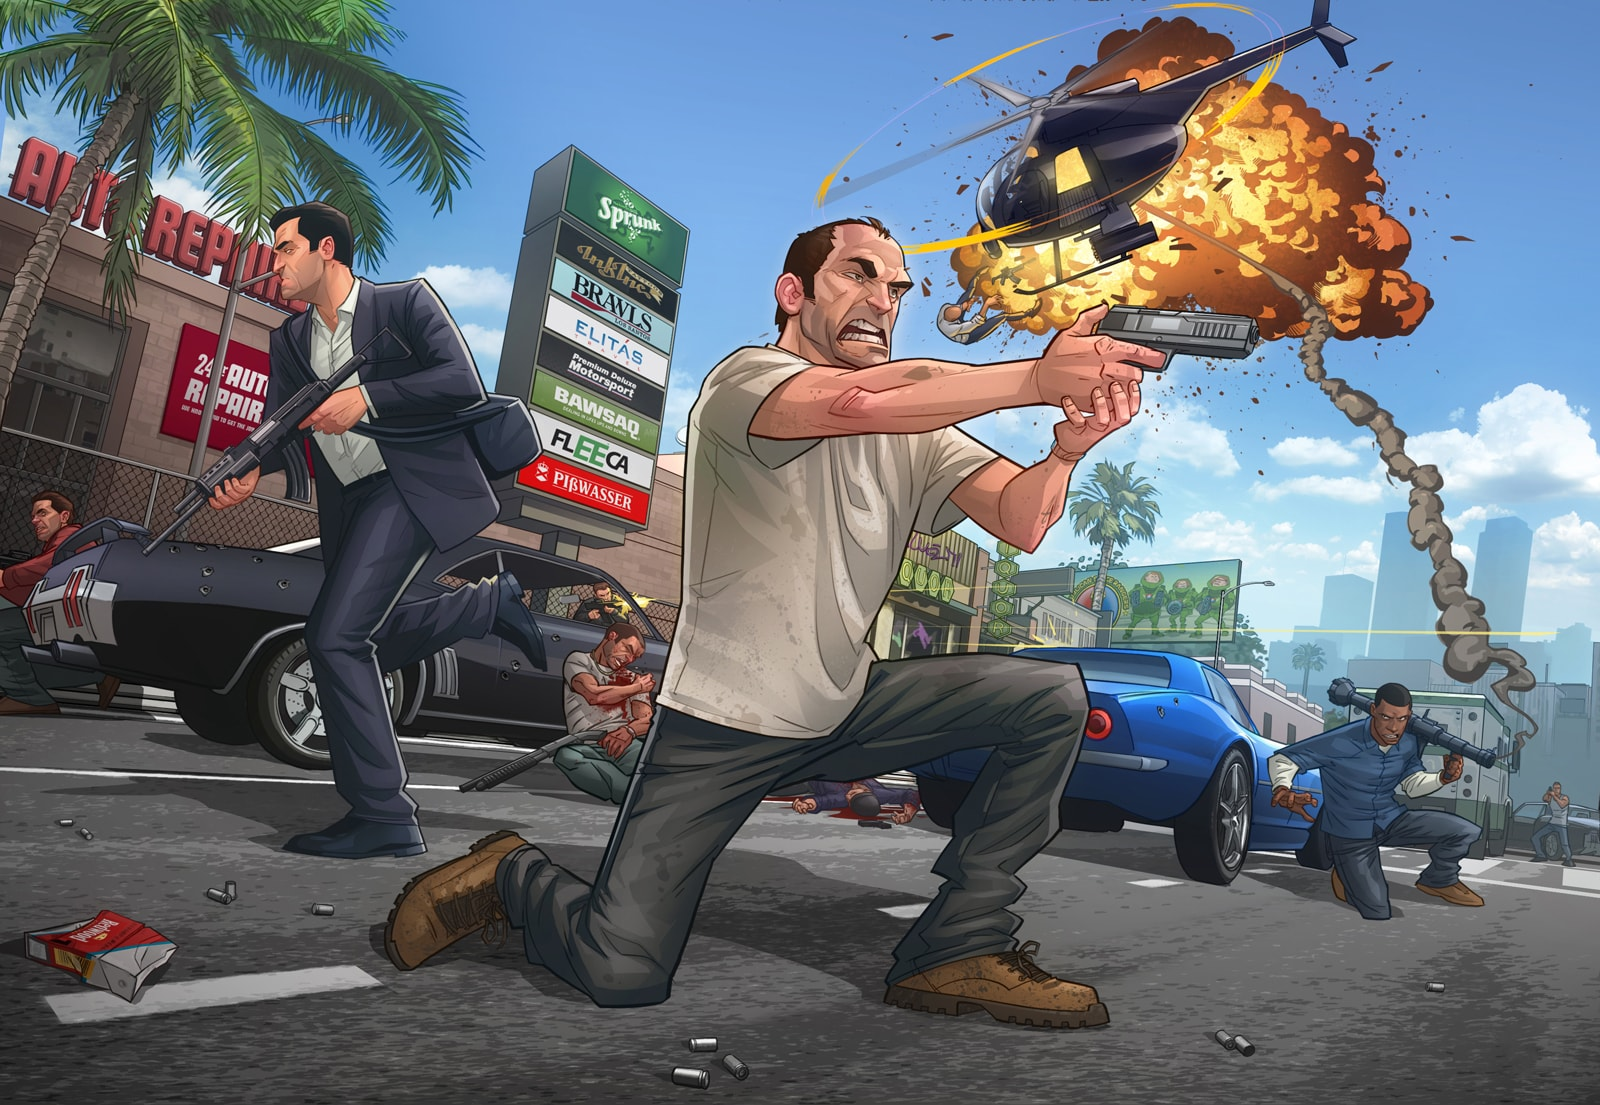 Gta  Wallpaper For Mobile Gta  Free Wallpaper